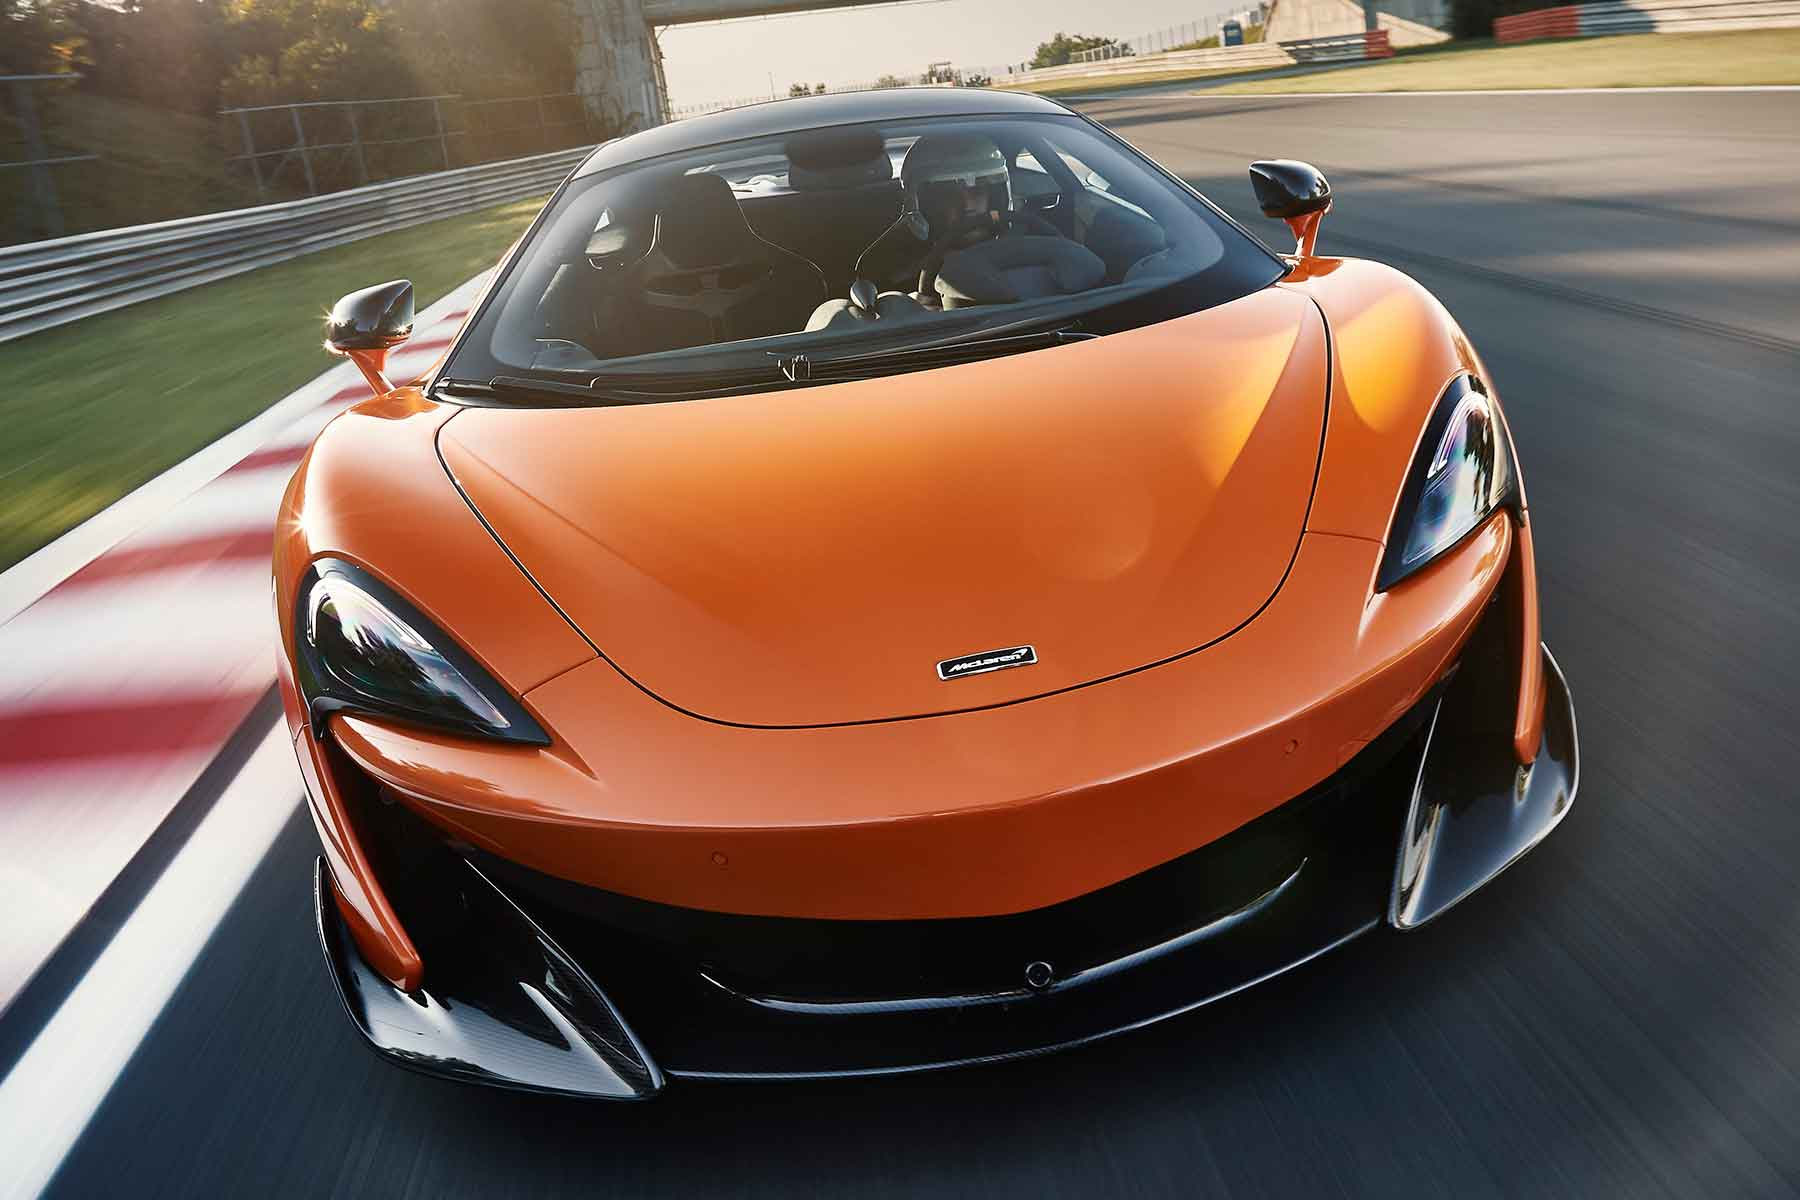 McLaren 600LT review: flat-out in the best driver's car of 2018